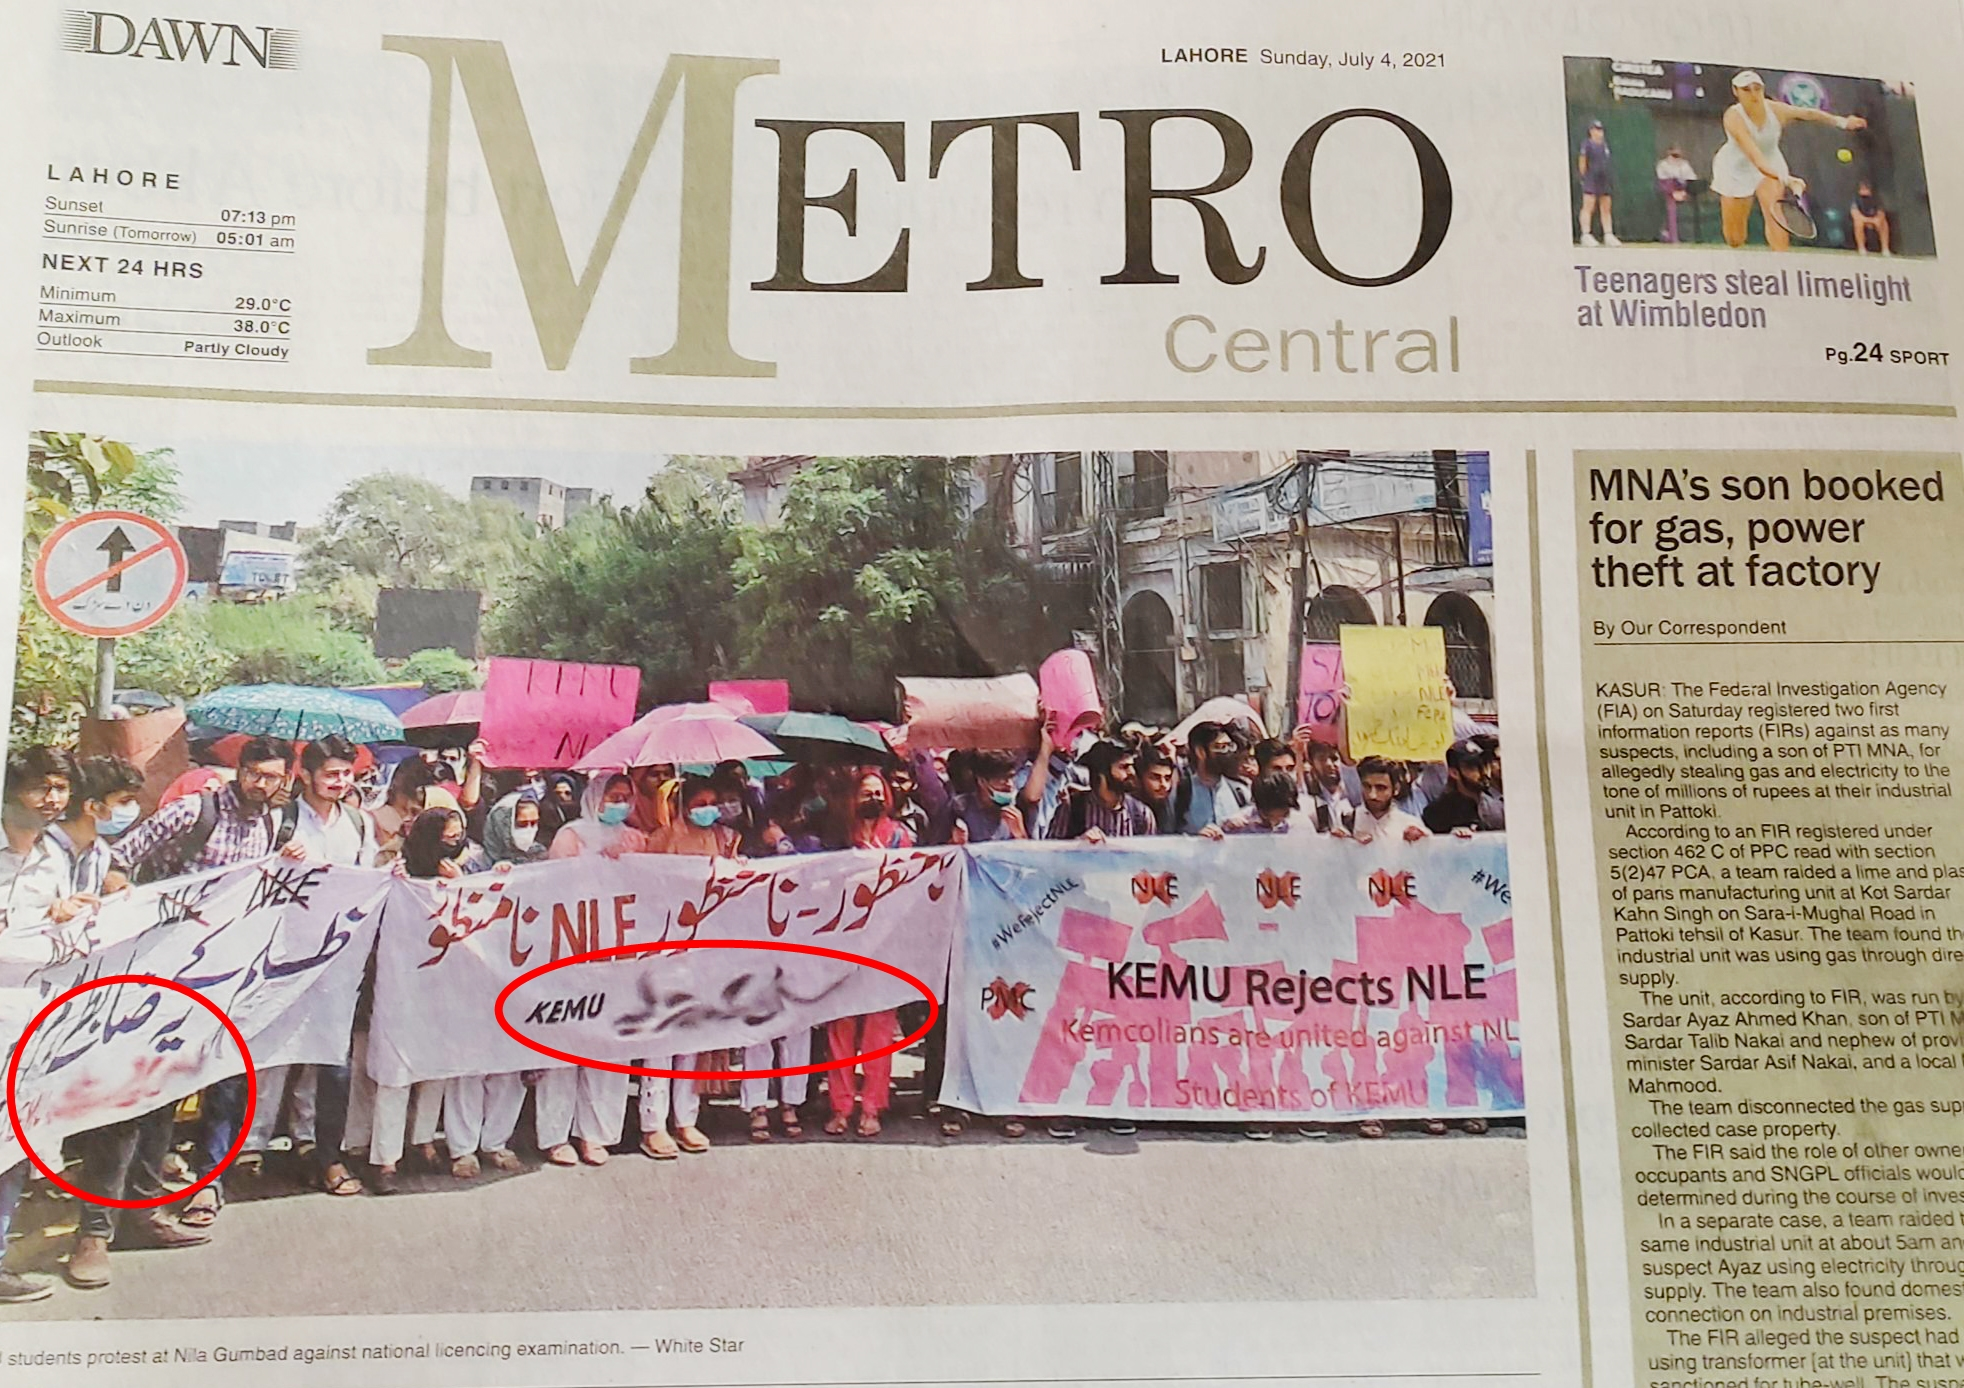 Pakistan's largest newspaper Dawn censors name of a Student Union on banners in NLE protest